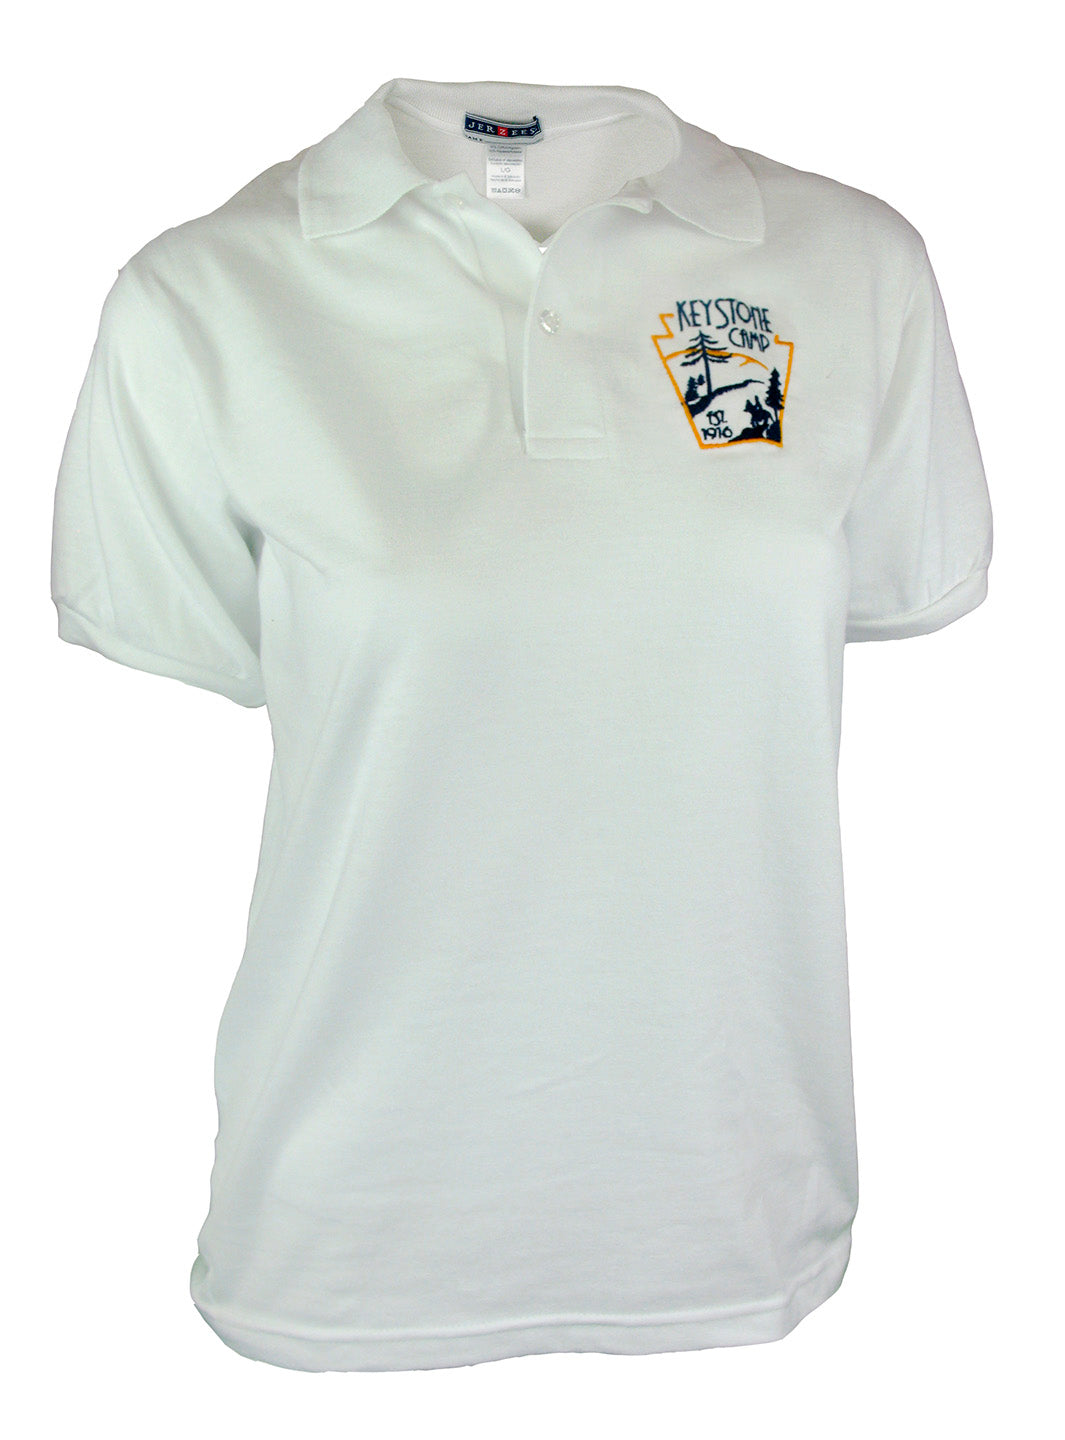 Keystone Camp Uniform Polo